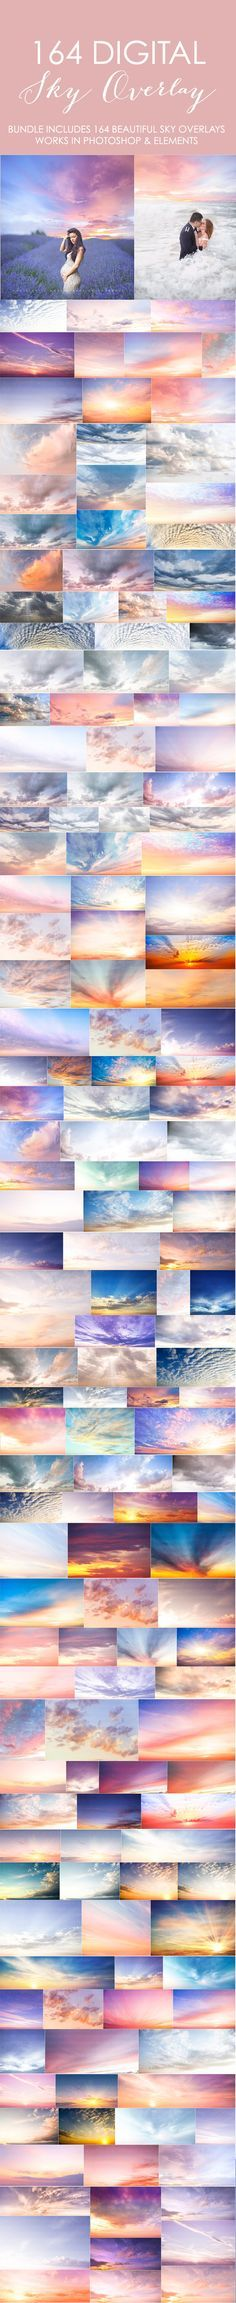 These are STUNNING!!! Bundle includes 164 beautiful sky overlays. Just choose your sky, copy and paste it over your own image and then erase what you don't need. Transform your images into something magical with these sky overlays. $55